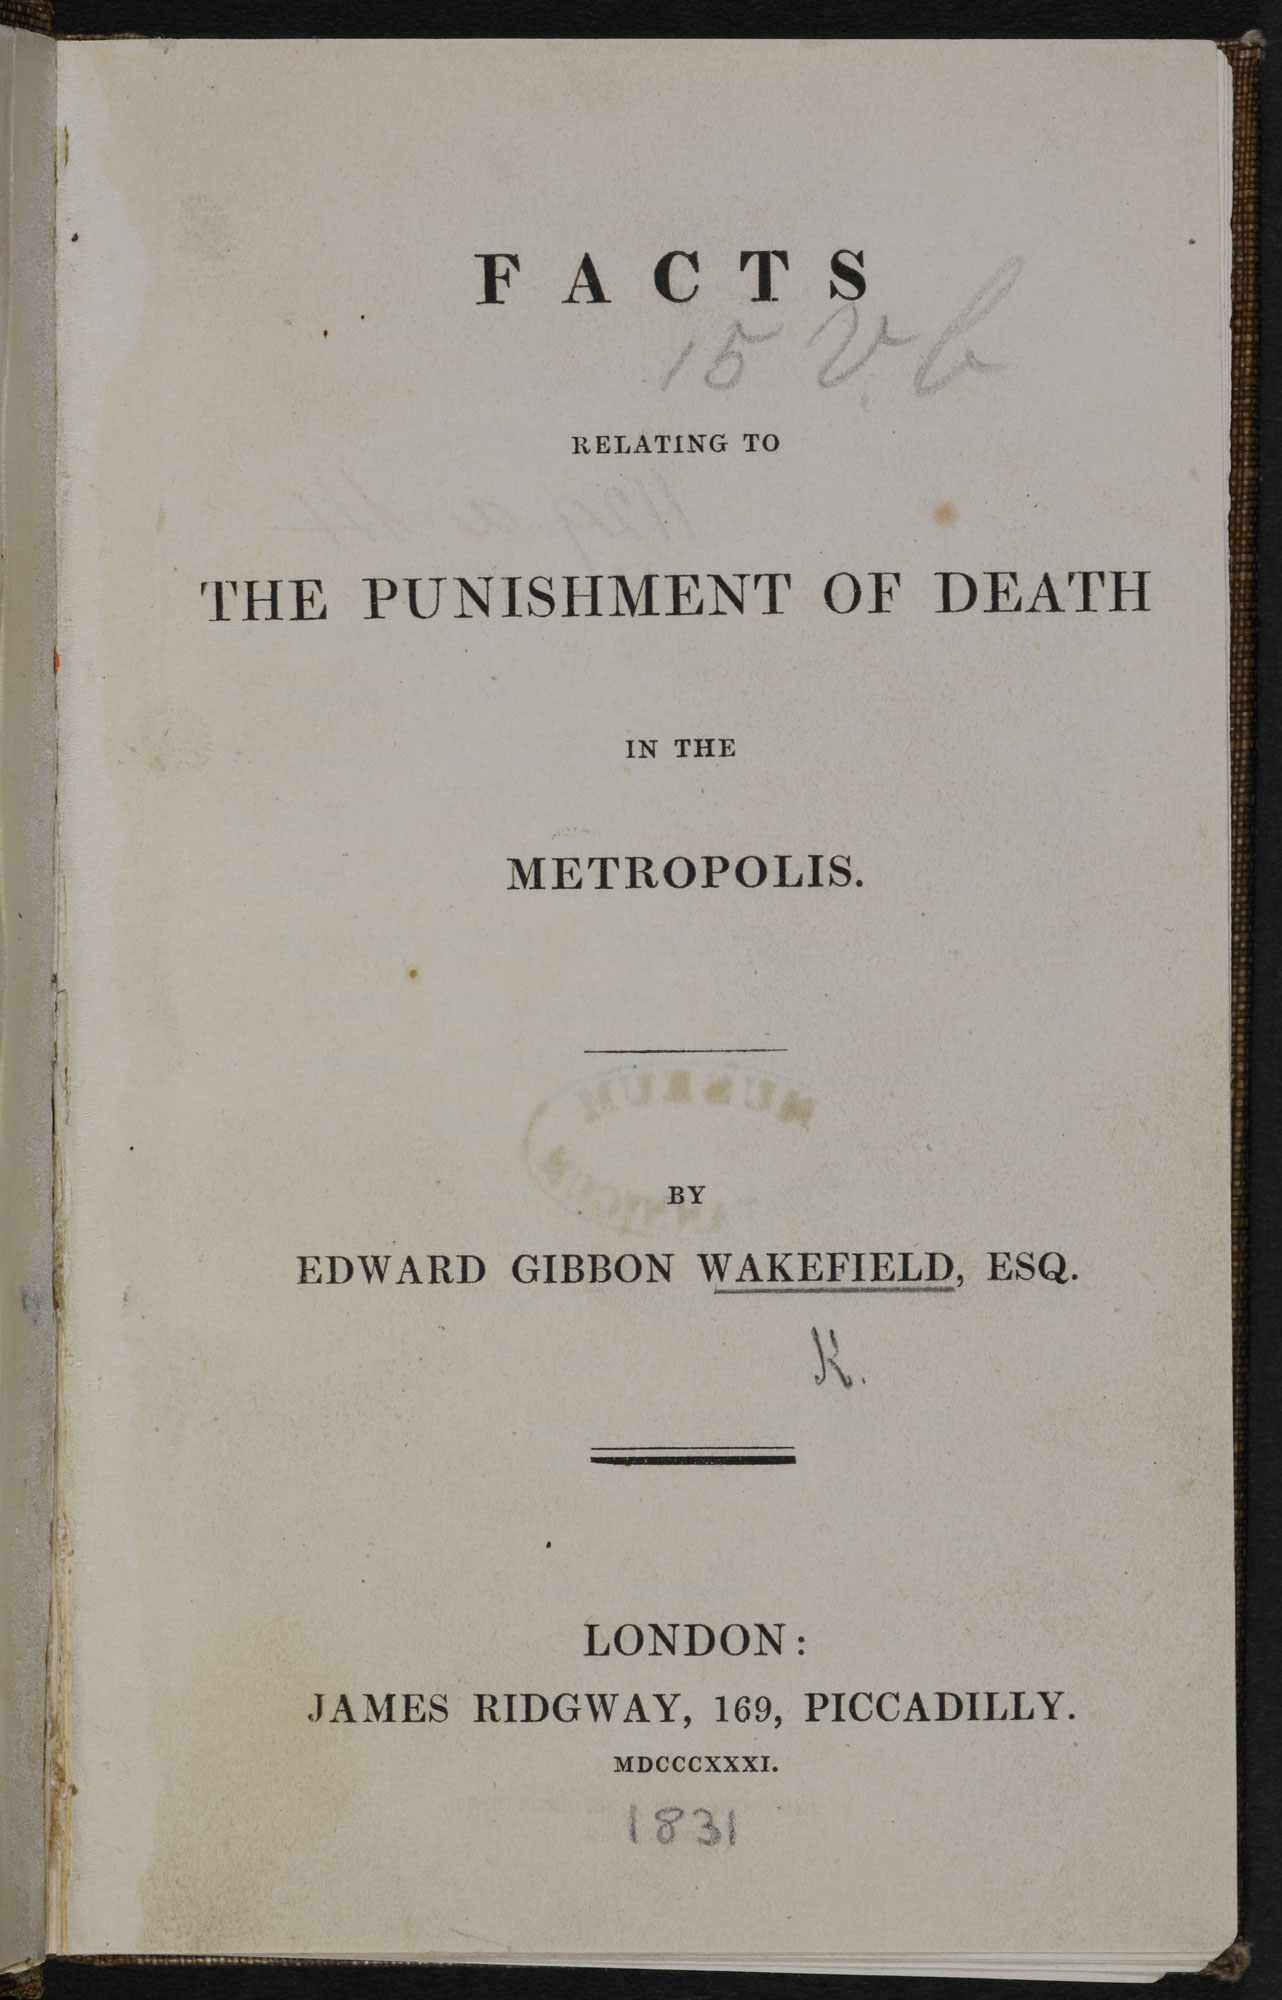 Facts Relating to the Punishment of Death in the Metropolis [page: title page]